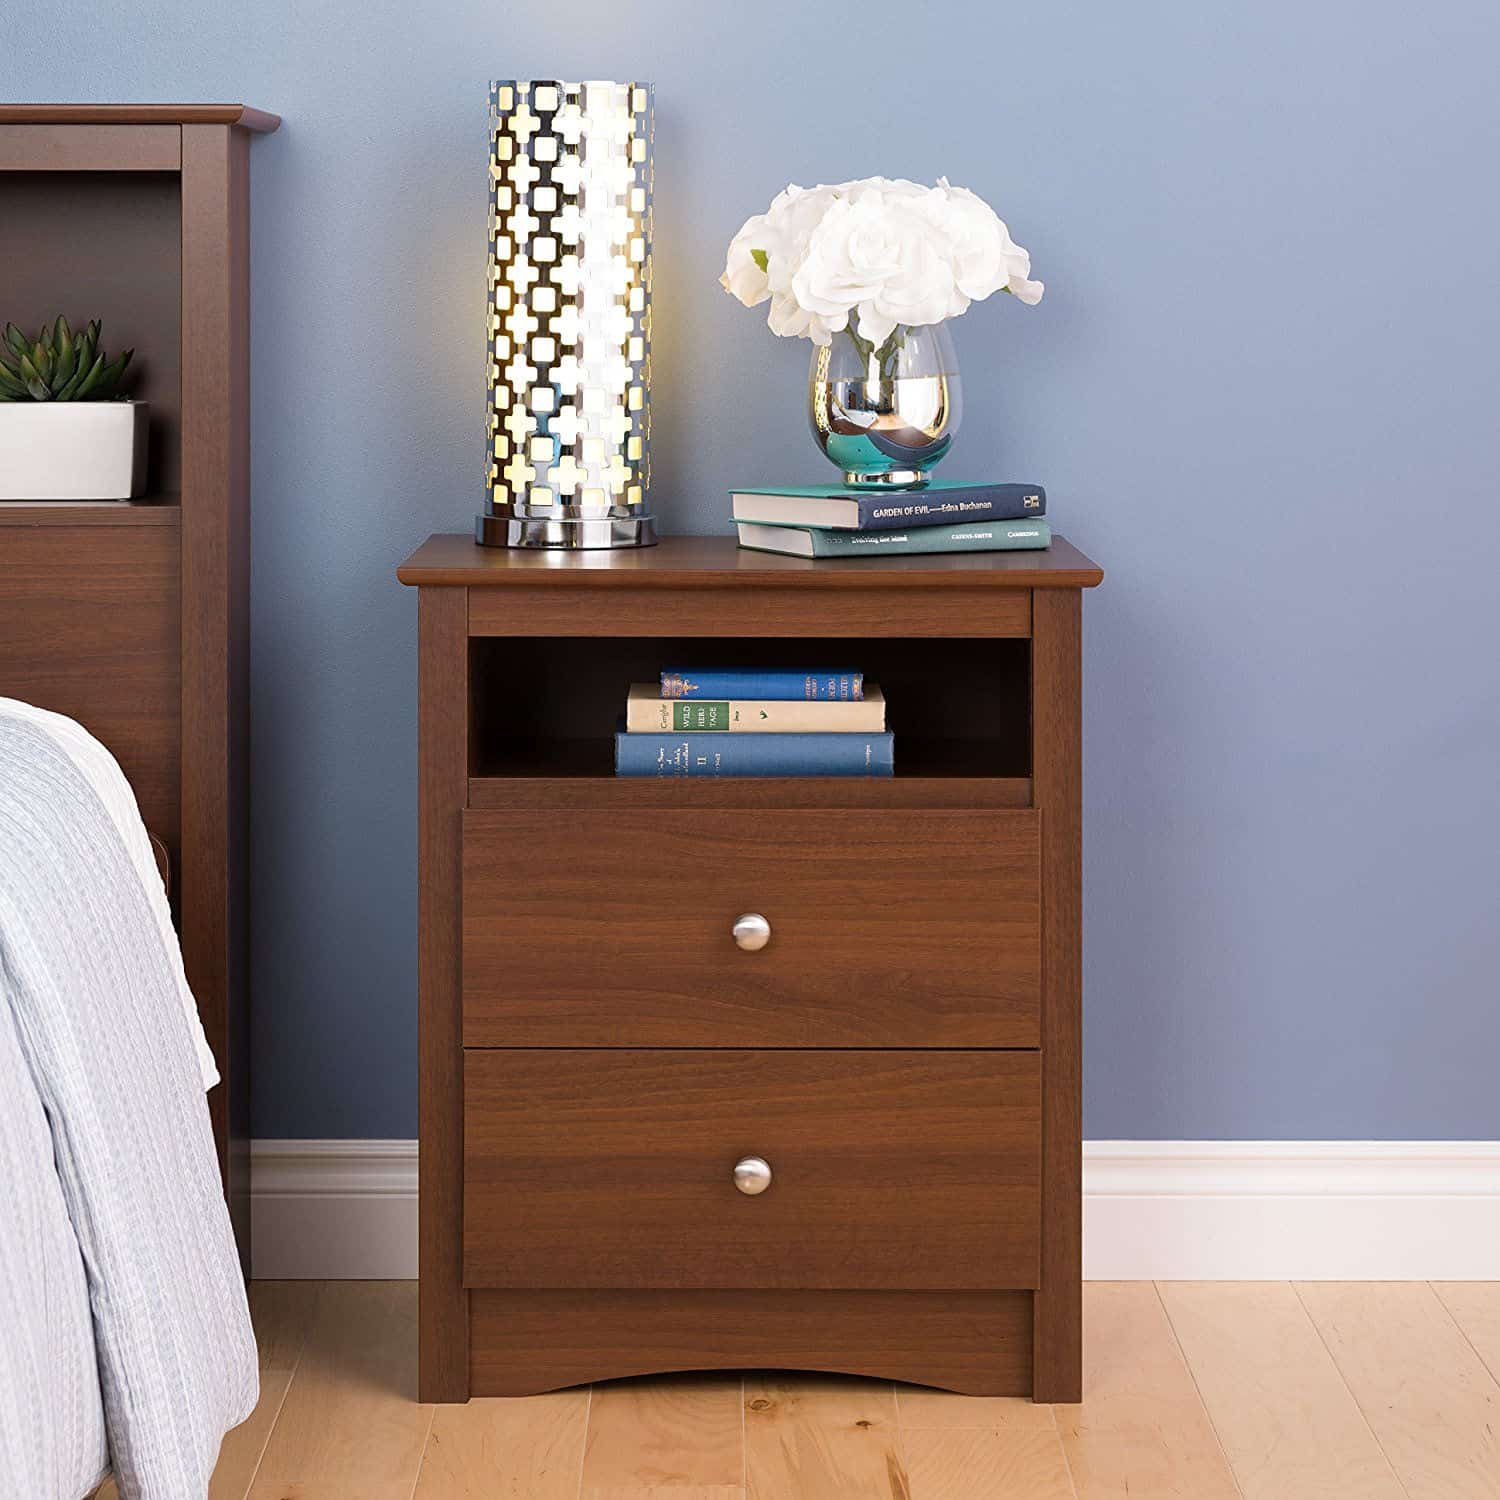 Small wood bedside table with drawers and a shelf.